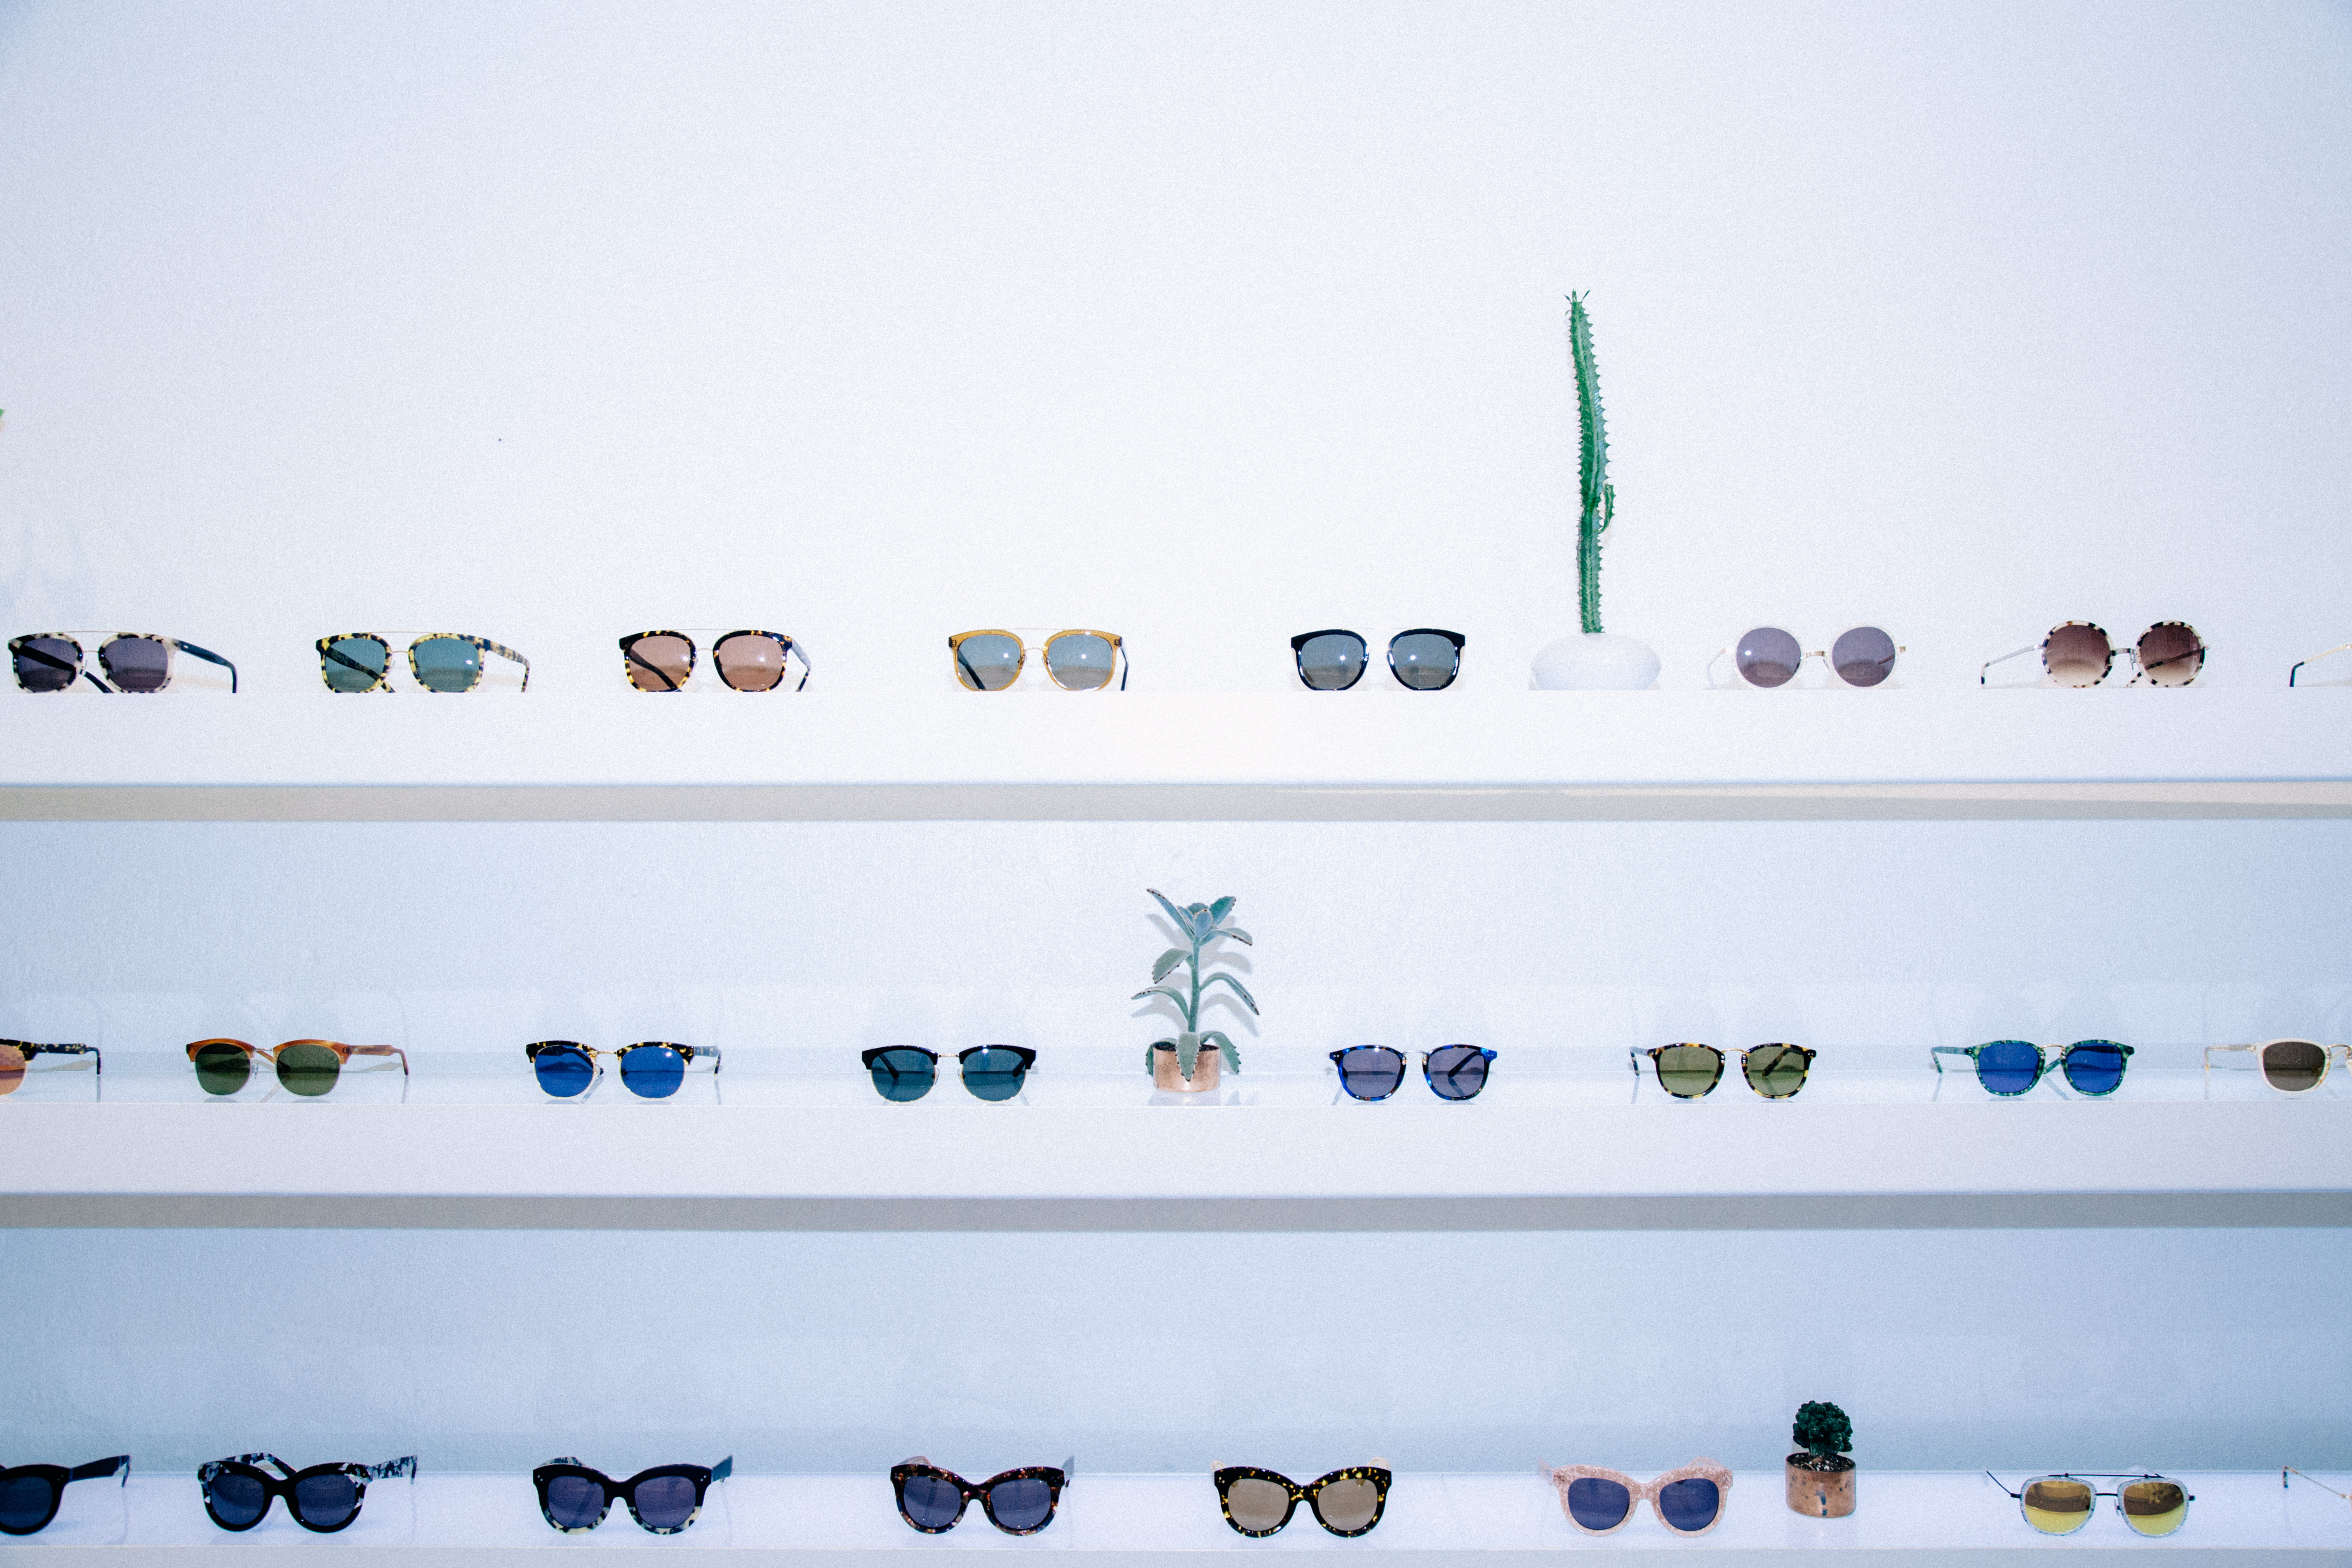 A wall display of colorful sunglasses by Krewe du Optic.